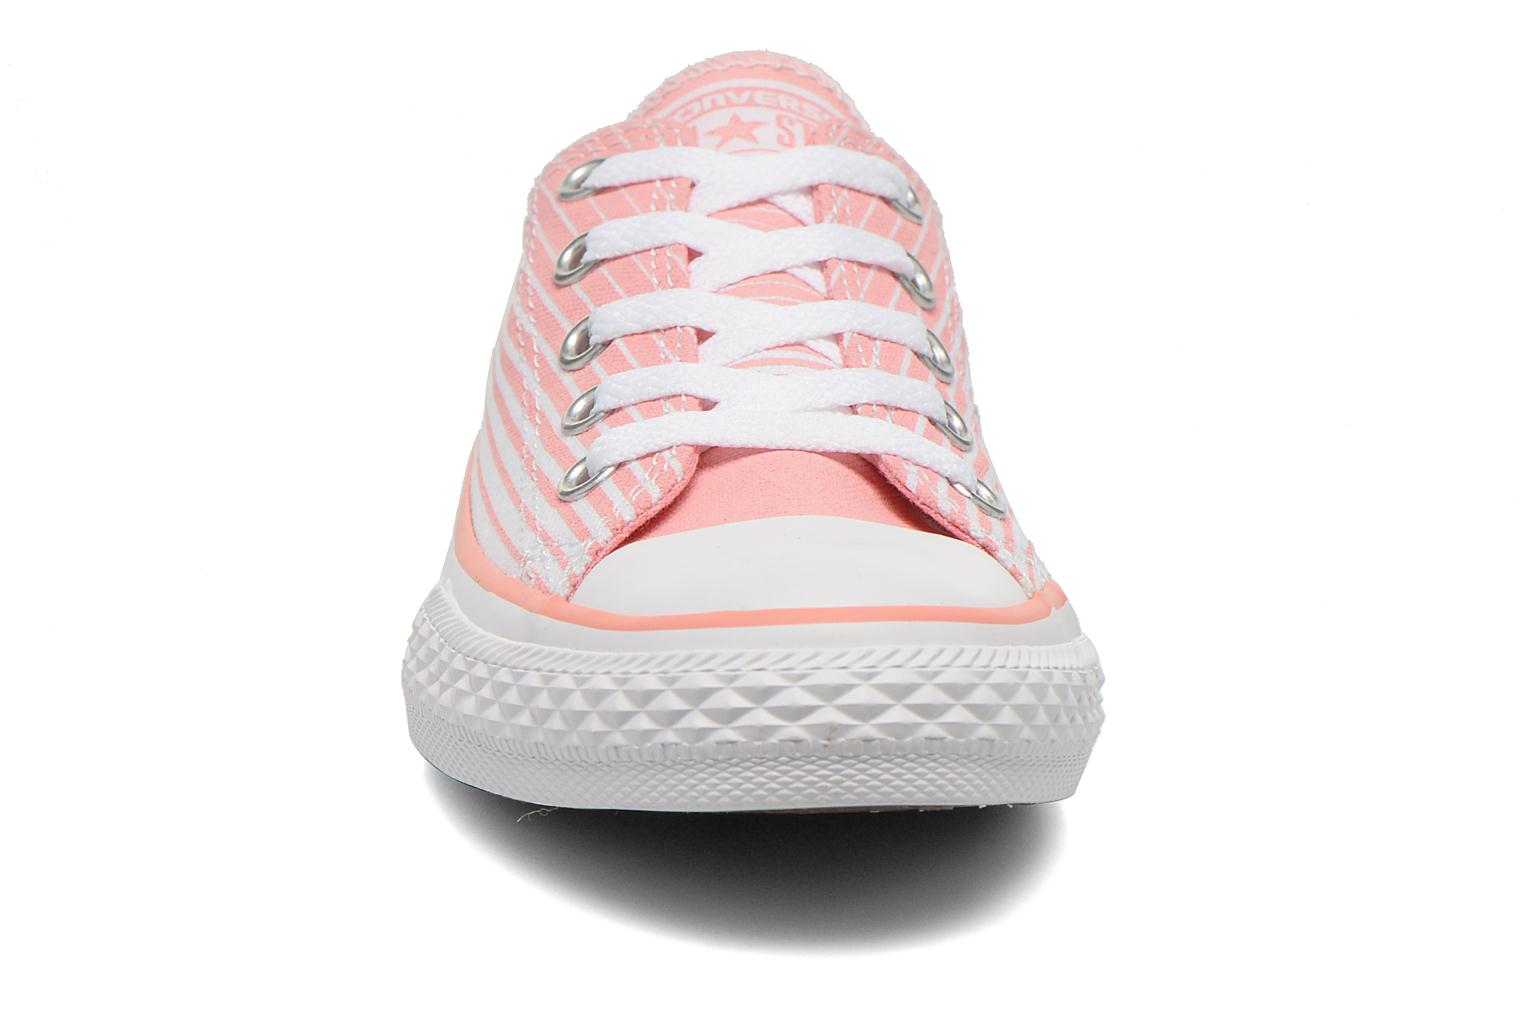 Vapor Pink/Green Glow/White Converse Chuck Taylor All Star Ox (Multicolore)